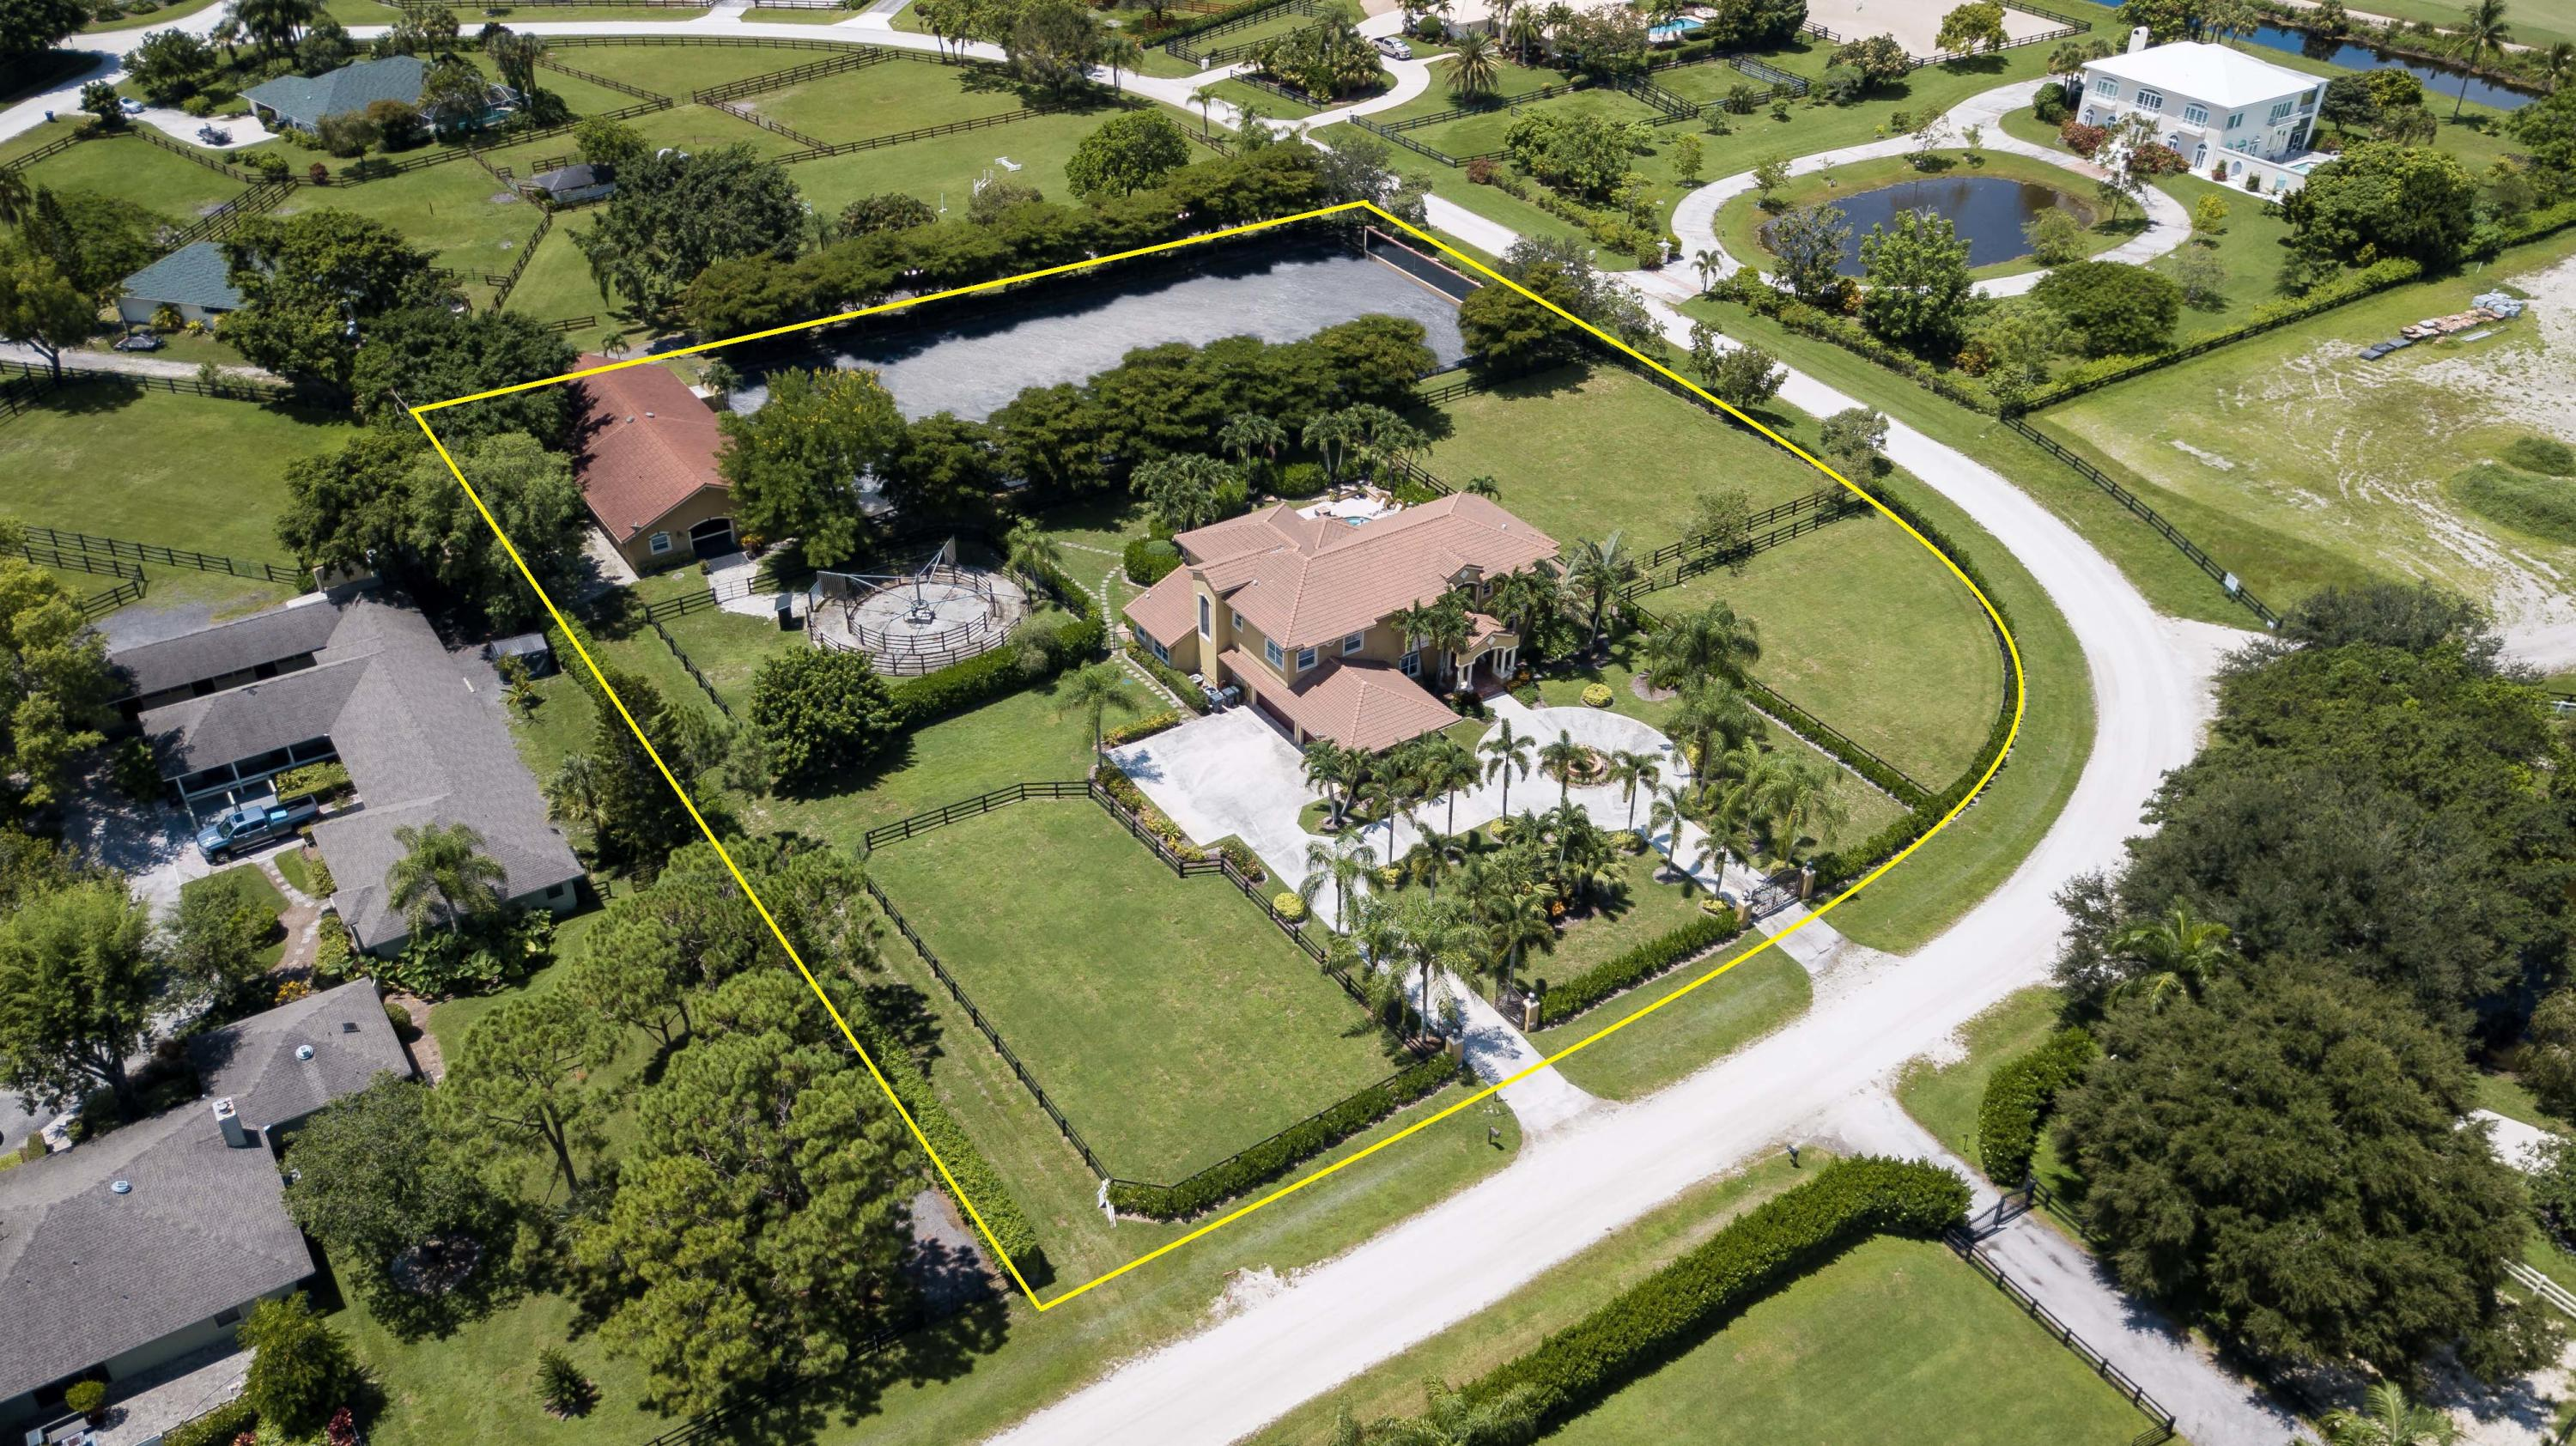 14829 Rolling Rock Place, Wellington, Florida 33414, 7 Bedrooms Bedrooms, ,5 BathroomsBathrooms,Single Family,For Rent,Saddle Trail,Rolling Rock,RX-10565826